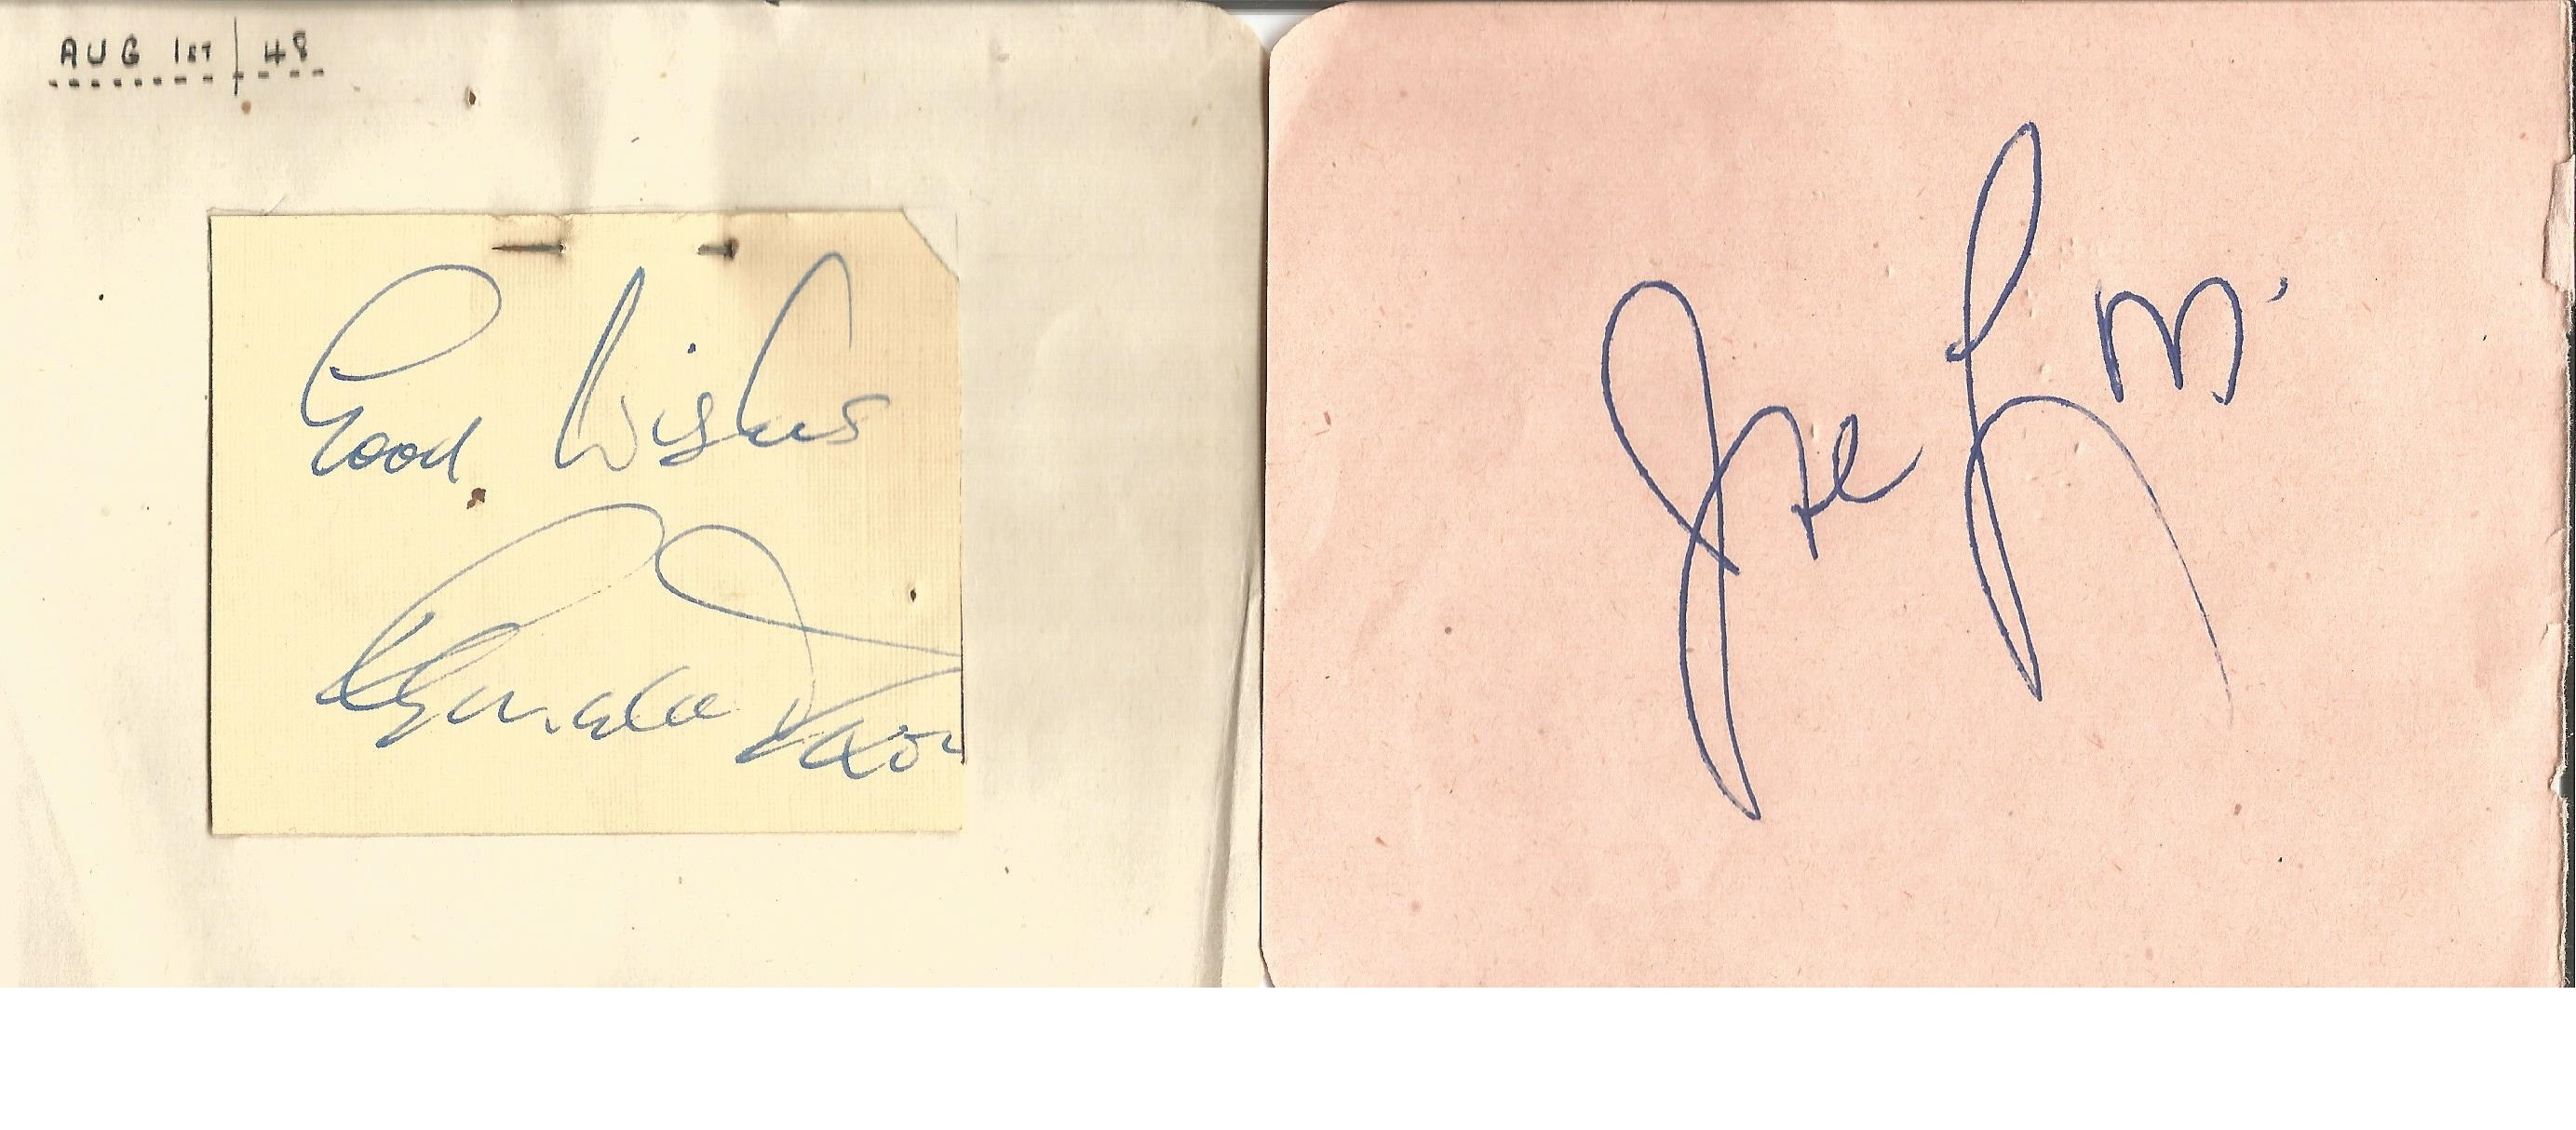 Lot 22 - Autograph book. With loose pages over 20 signatures. Some of names included are Mary Livingstone,